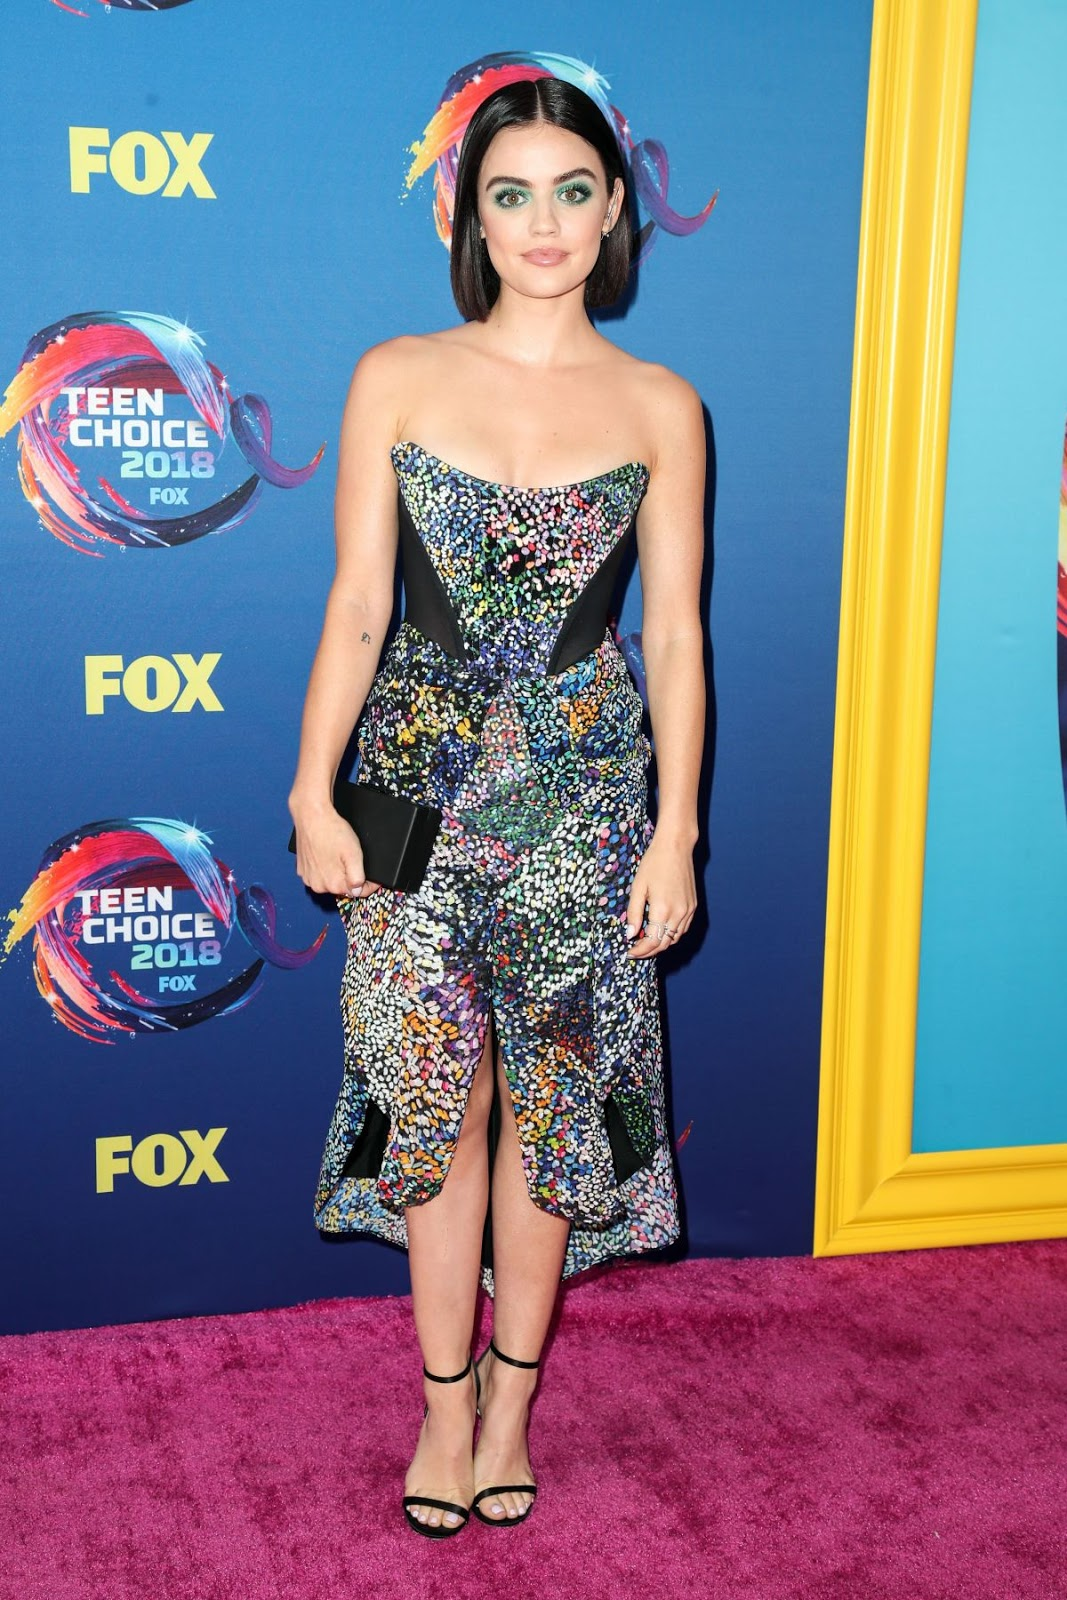 Lucy Hale stuns in splashy green eye make-up as she walks the Teen Choice Awards red carpet